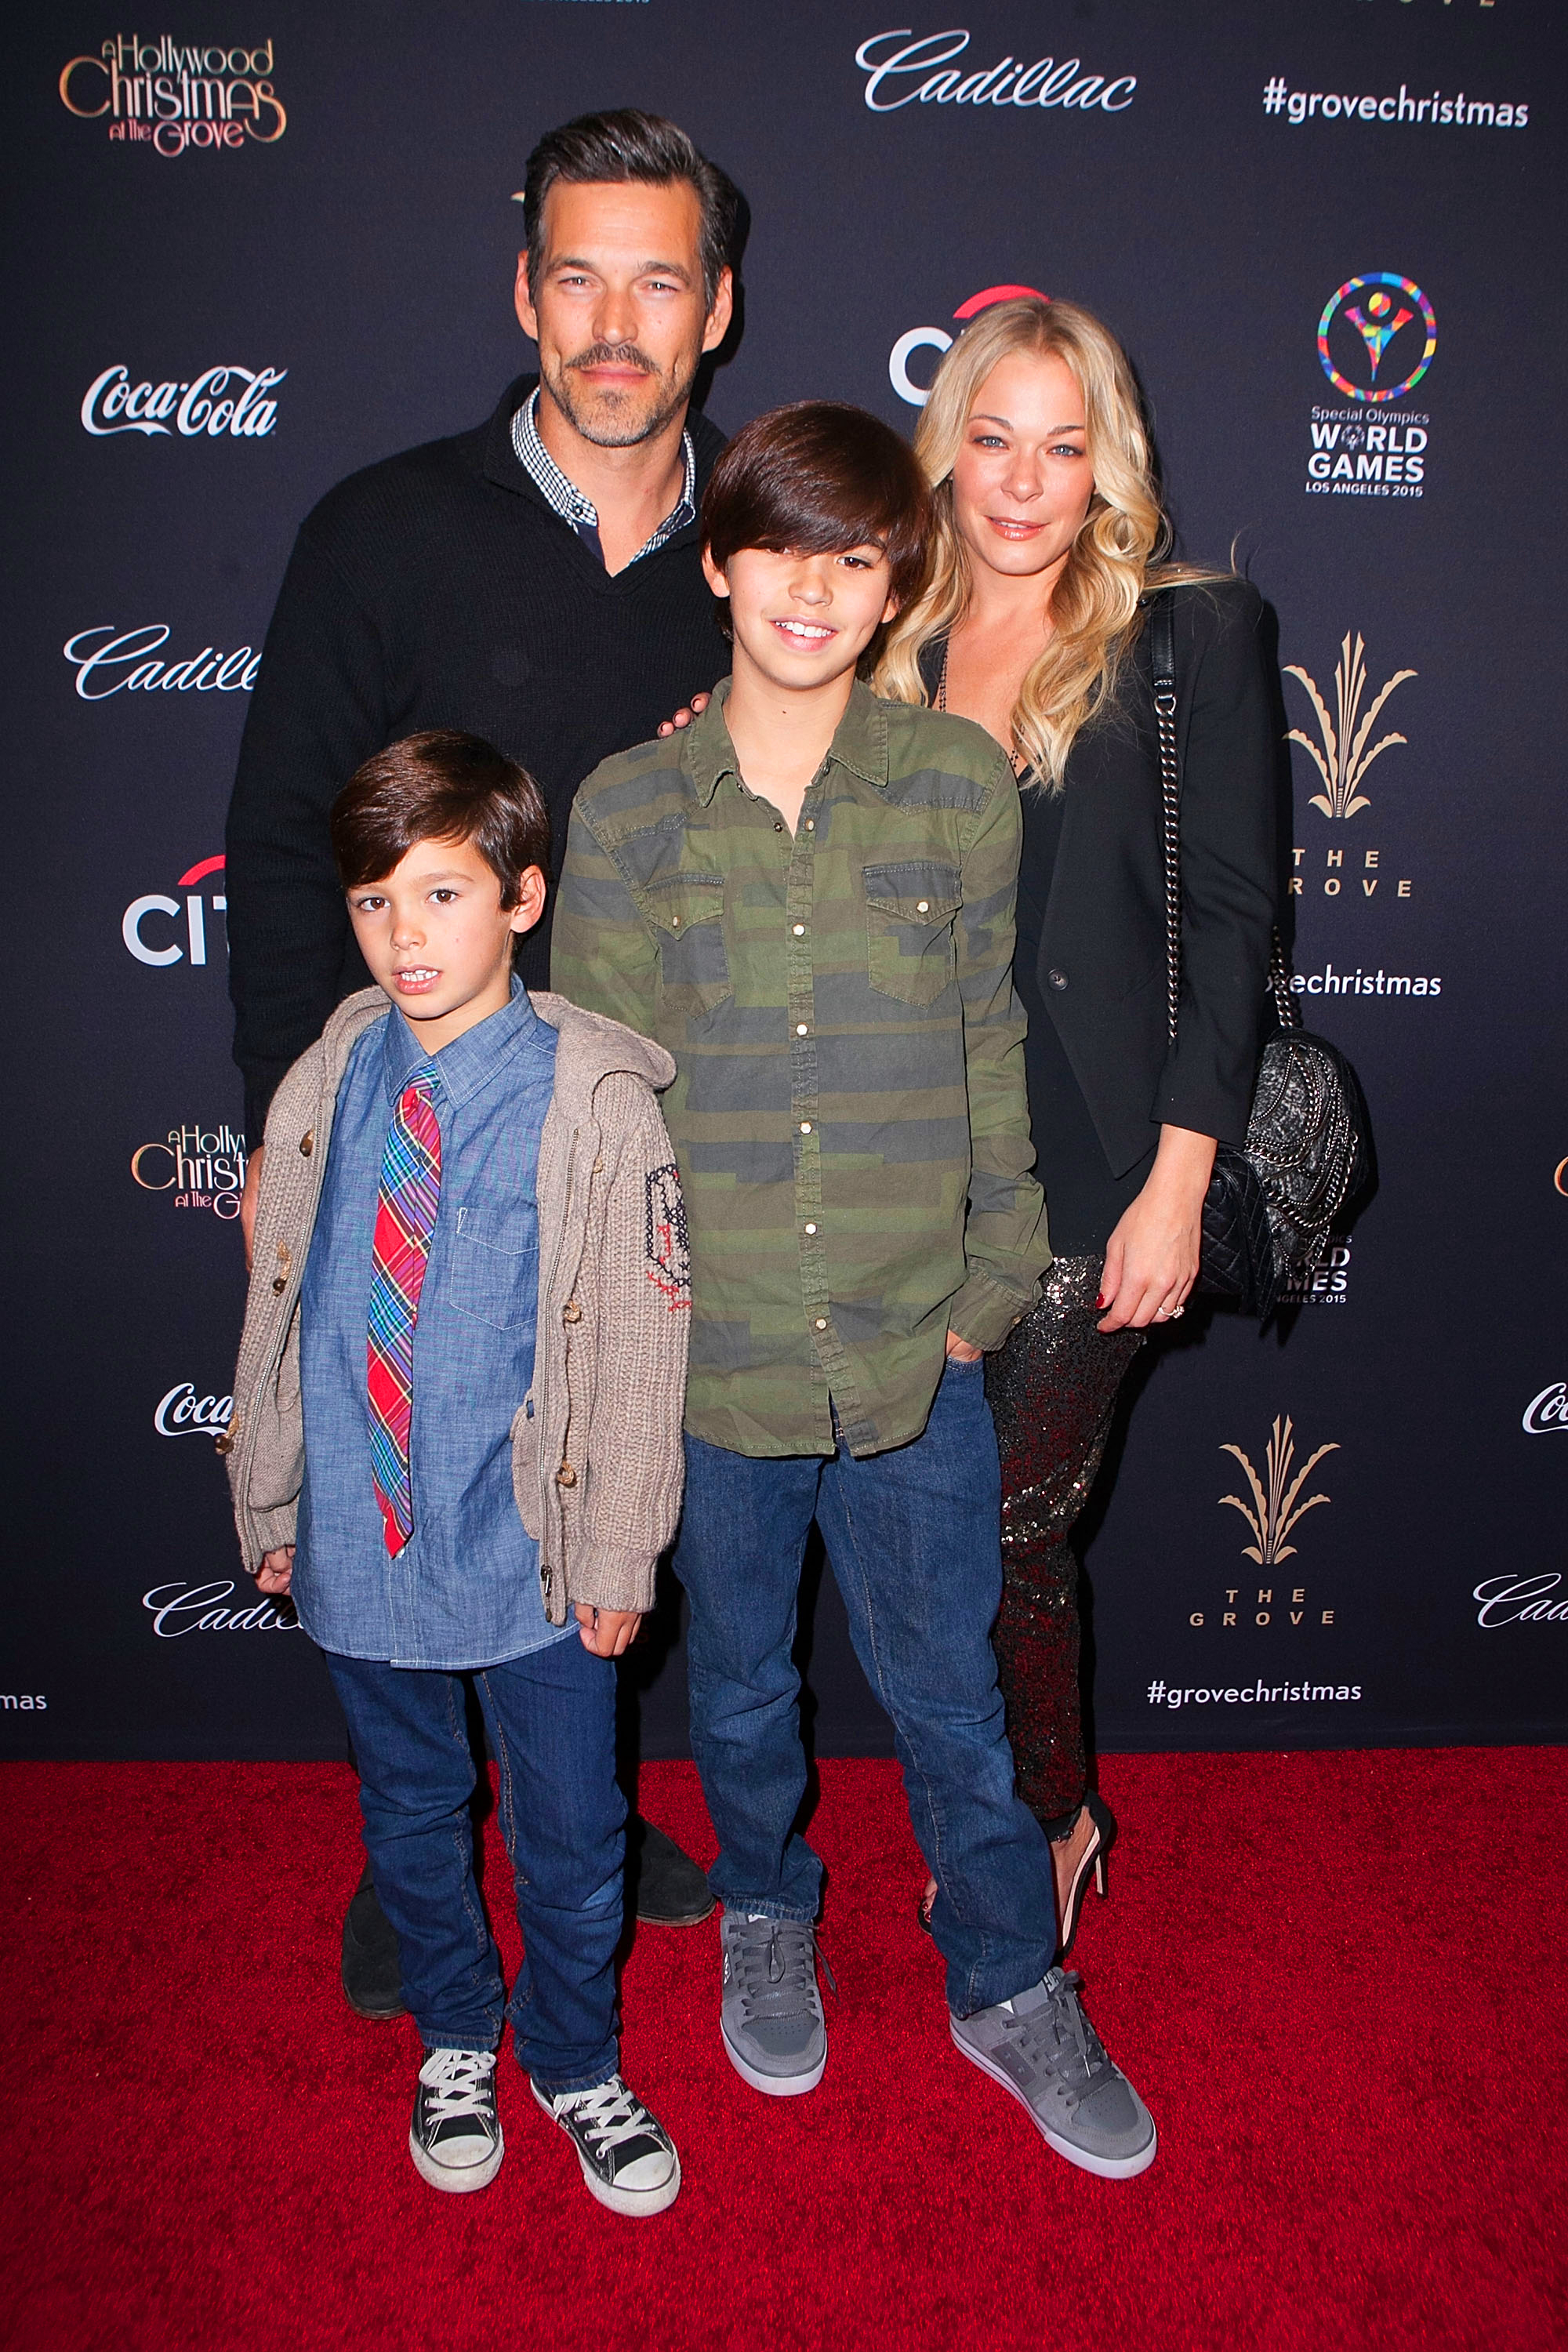 """Revisit Brandi Glanville's Feud With Eddie Cibrian and LeAnn Rimes - The Bravo personality changed her tune about Rimes as a stepmother. She told Us exclusively, """"I know that my kids love her, and I know that she's upset. I, unfortunately, don't find her to be stable and I don't want her around my kids when Eddie's not there."""""""